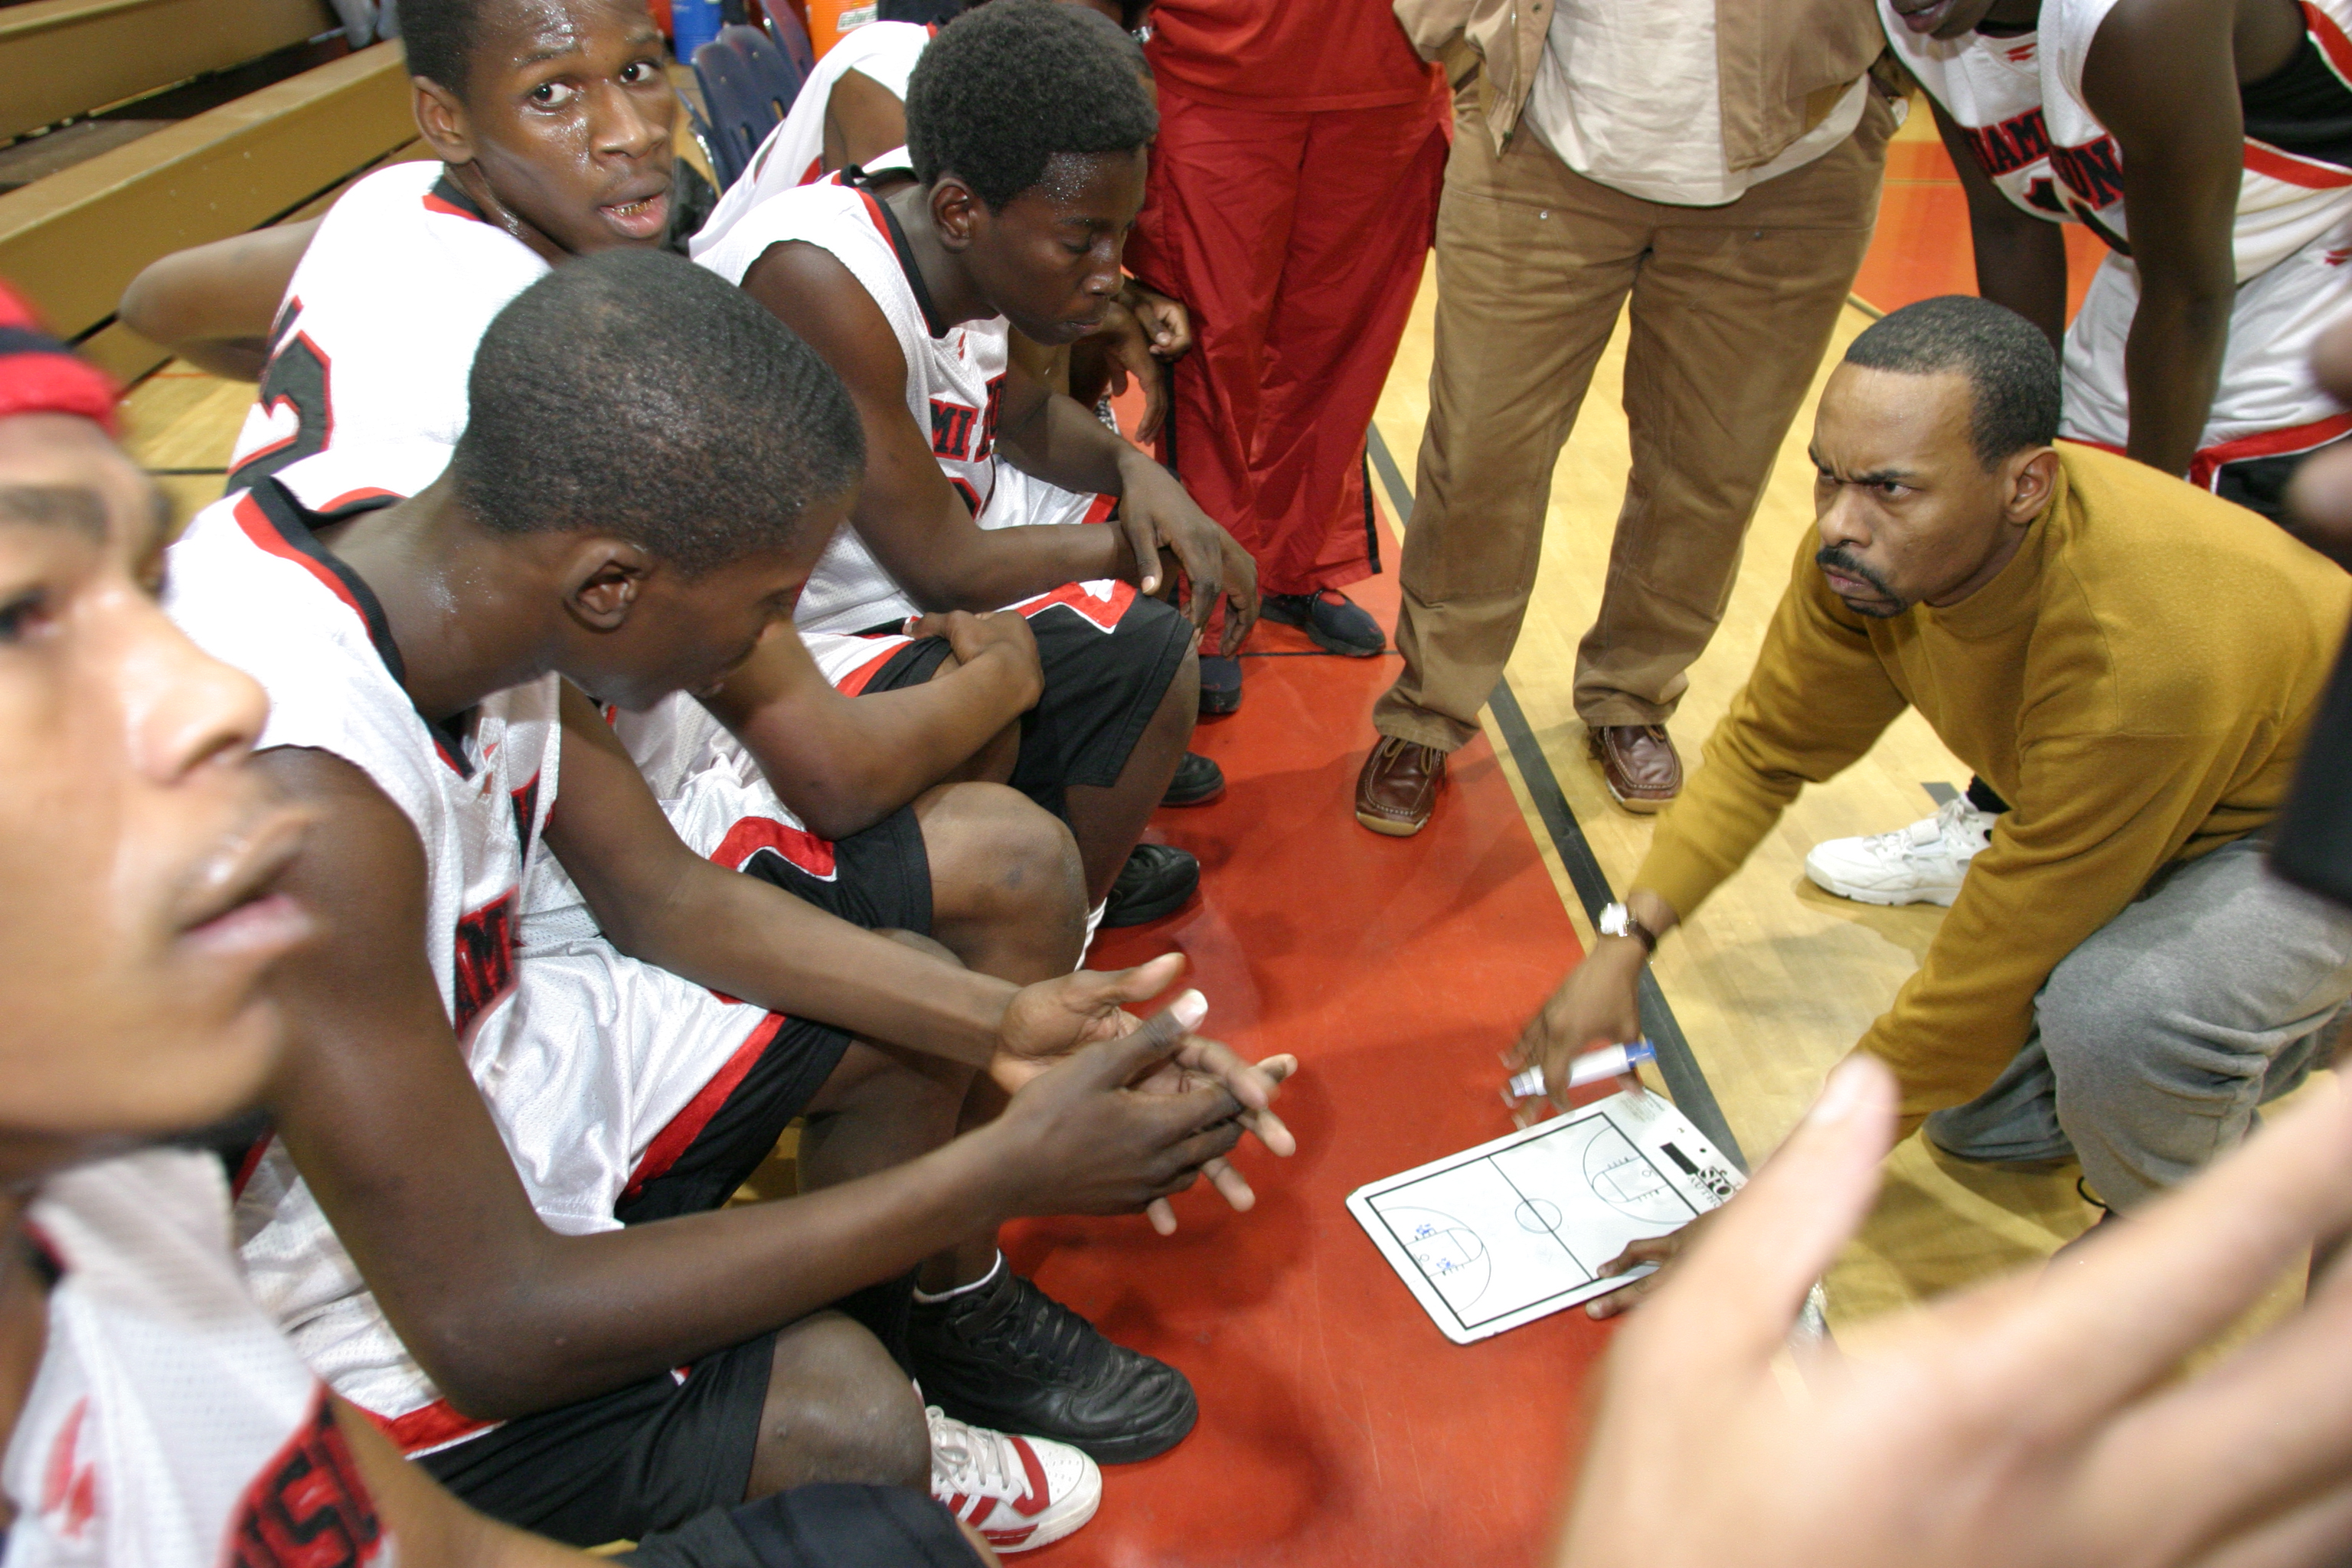 A coach talking to his students at the Edison High School vs. Miami High School basketball game.